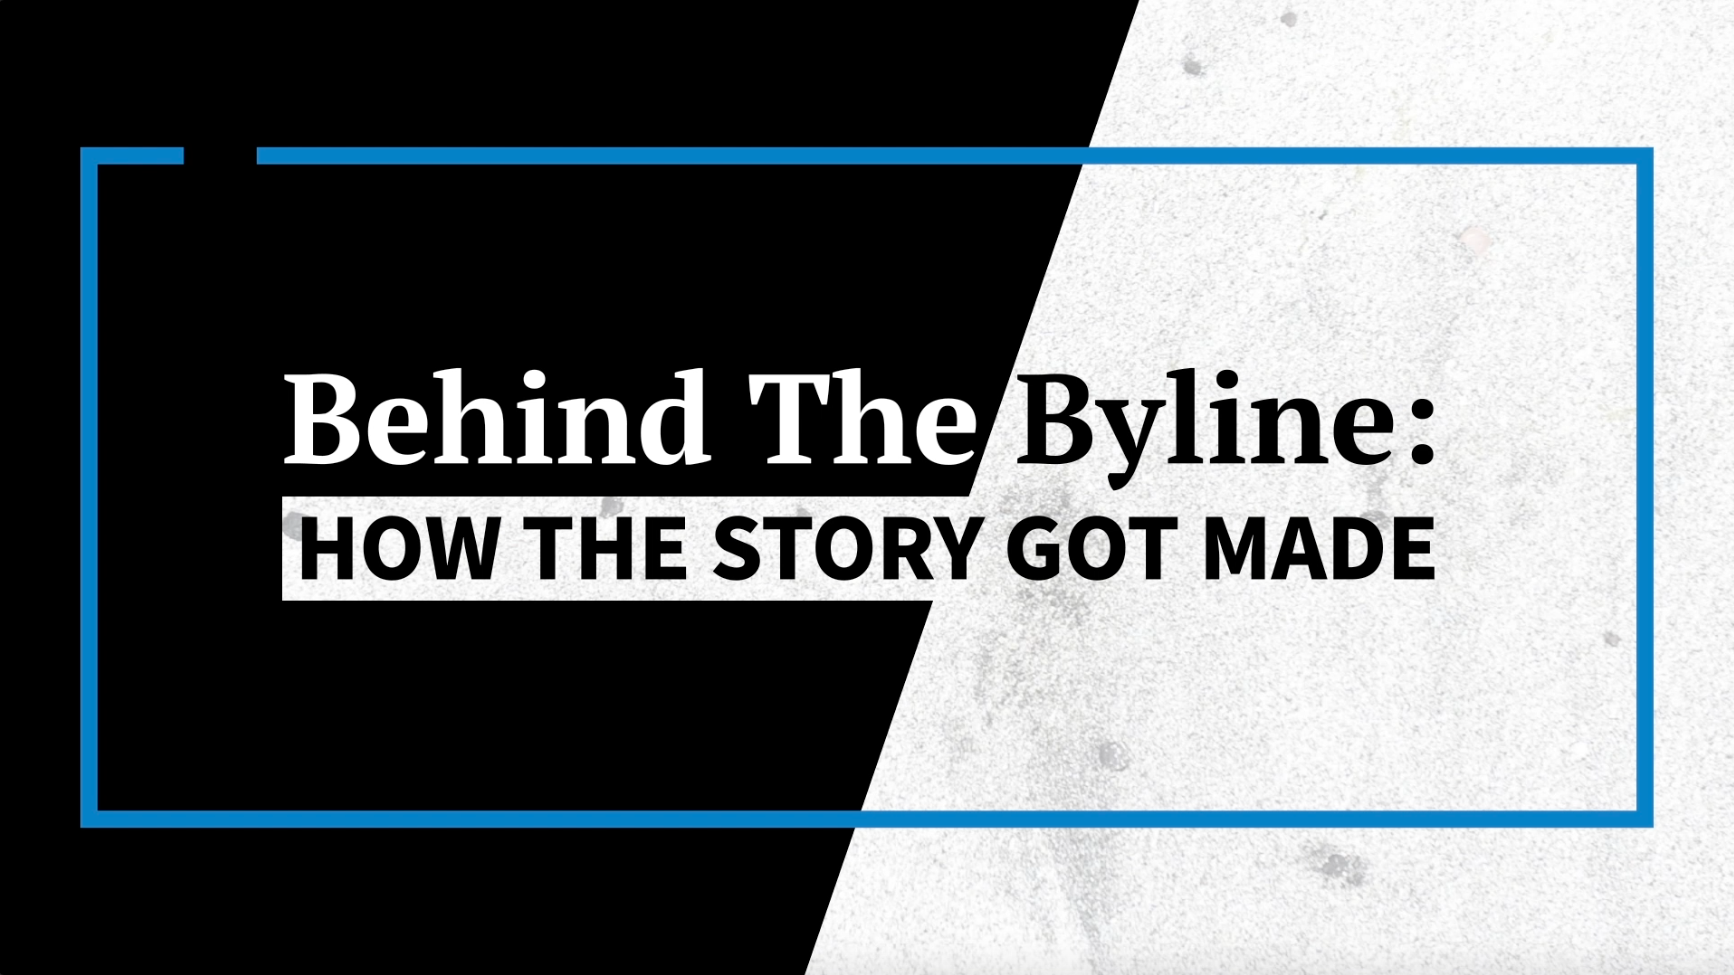 Behind the Byline: The Count — And the Toll